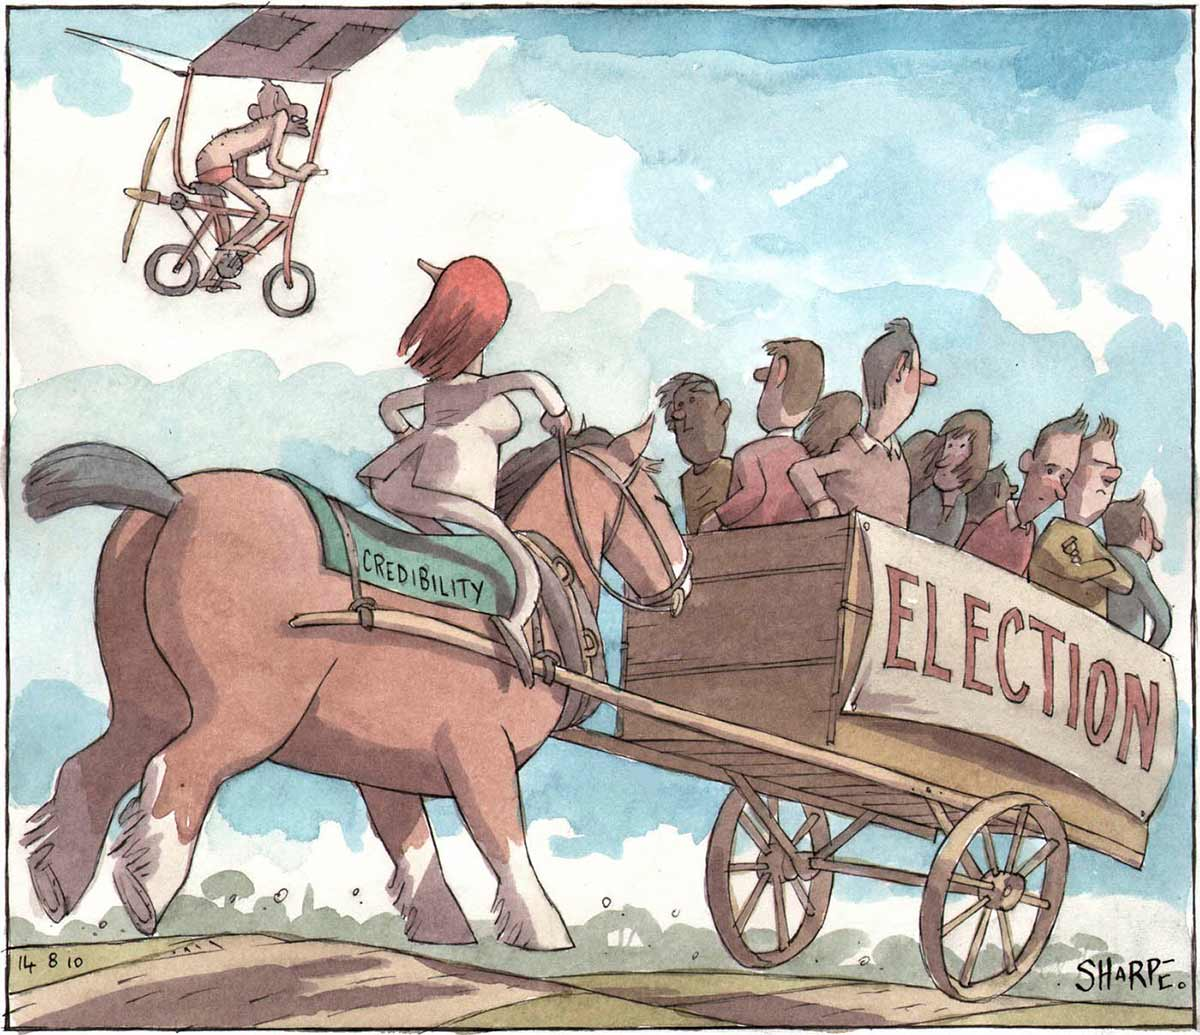 A colour cartoon depicting Julia Gillard galloping across a landscape on a large horse. The horse has 'Credibility' on the blanket on its back, and is attached to a cart in front of it. On the side of the cart is a sign that says 'Election'. In the cart are several people, looking in different directions. One man has his arms folded and looks annoyed. In the sky nearby, Tony Abbott is seen pedalling a flying bicycle, with wings and a propellor on the back. He heads in the same direction as Gillard, and wears a pair of red swimming trunks. She looks up at him.